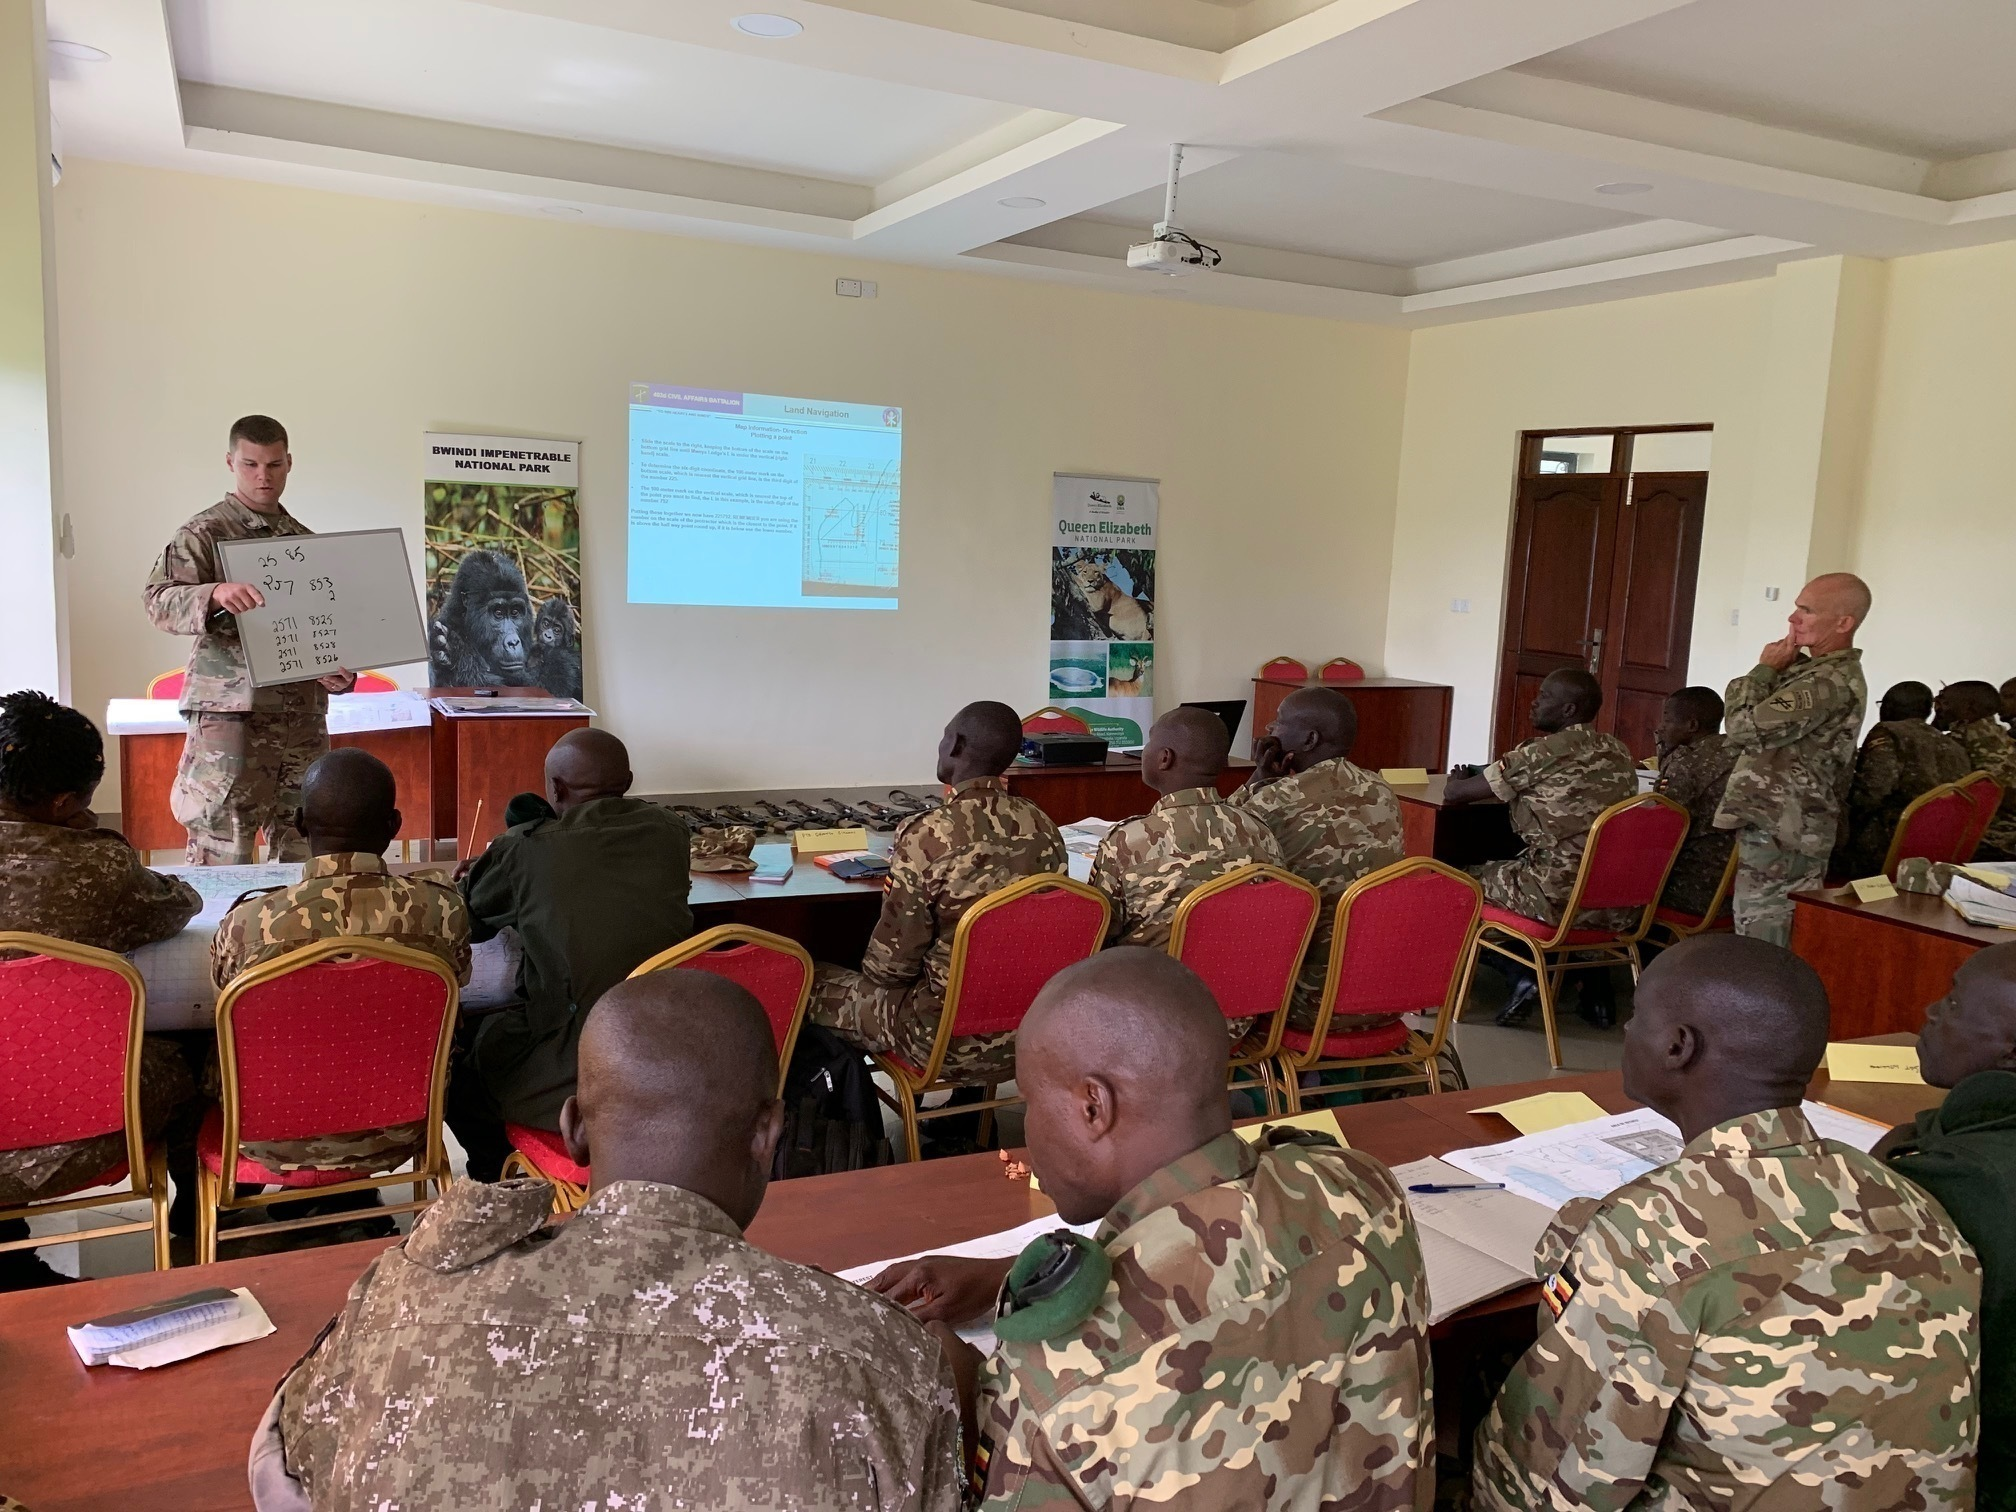 U.S. Army Sgt. Allen Ruffles, a 403rd Civil Affairs Battalion soldier assigned to Combined Joint Task Force-Horn of Africa (CJTF-HOA), speaks to African coalition partners during a navigation class in Kampala, Uganda, May 20, 2019. Personnel from the civil affairs battalion travelled to Uganda to take part in a subject matter expert exchange with coalition forces as part of a Uganda Wildlife Authority counter-illicit trafficking course. (Courtesy photo)